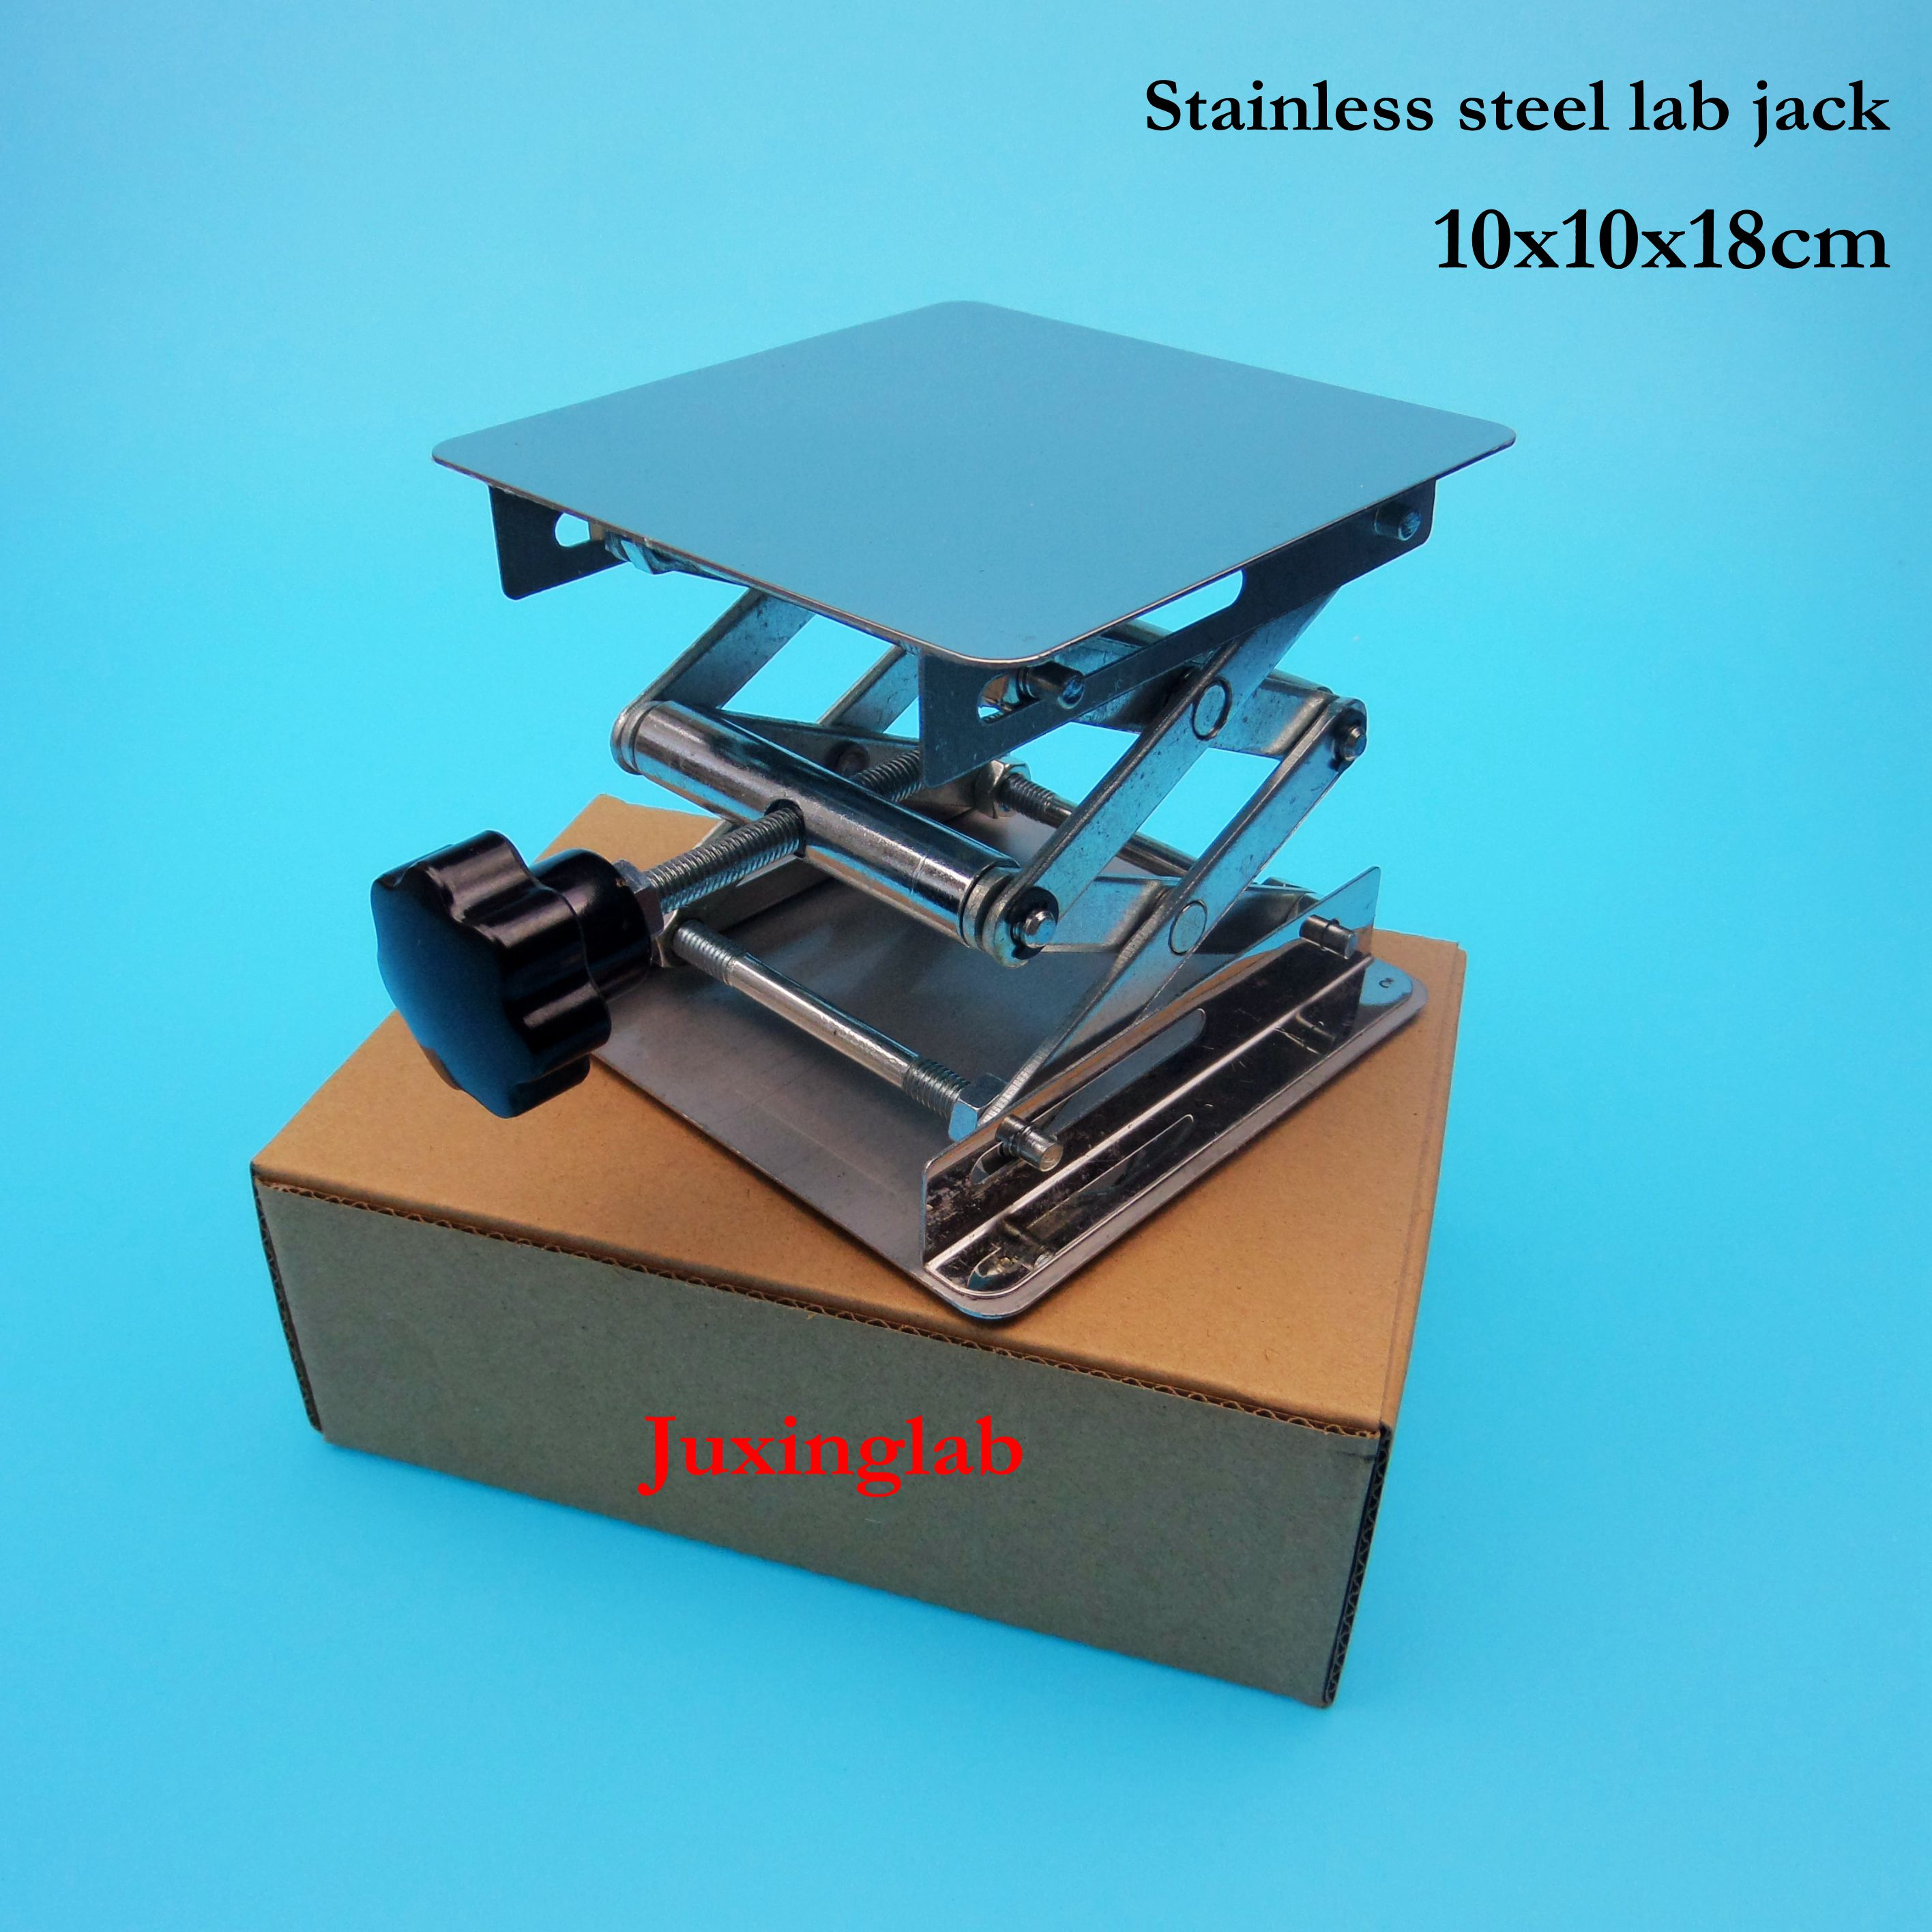 Lab Jack Laboratory Support Jacks 100x100x180mm Stainless Steel Lifting Table Raising Platform 4'' Inch 10x10x18cm